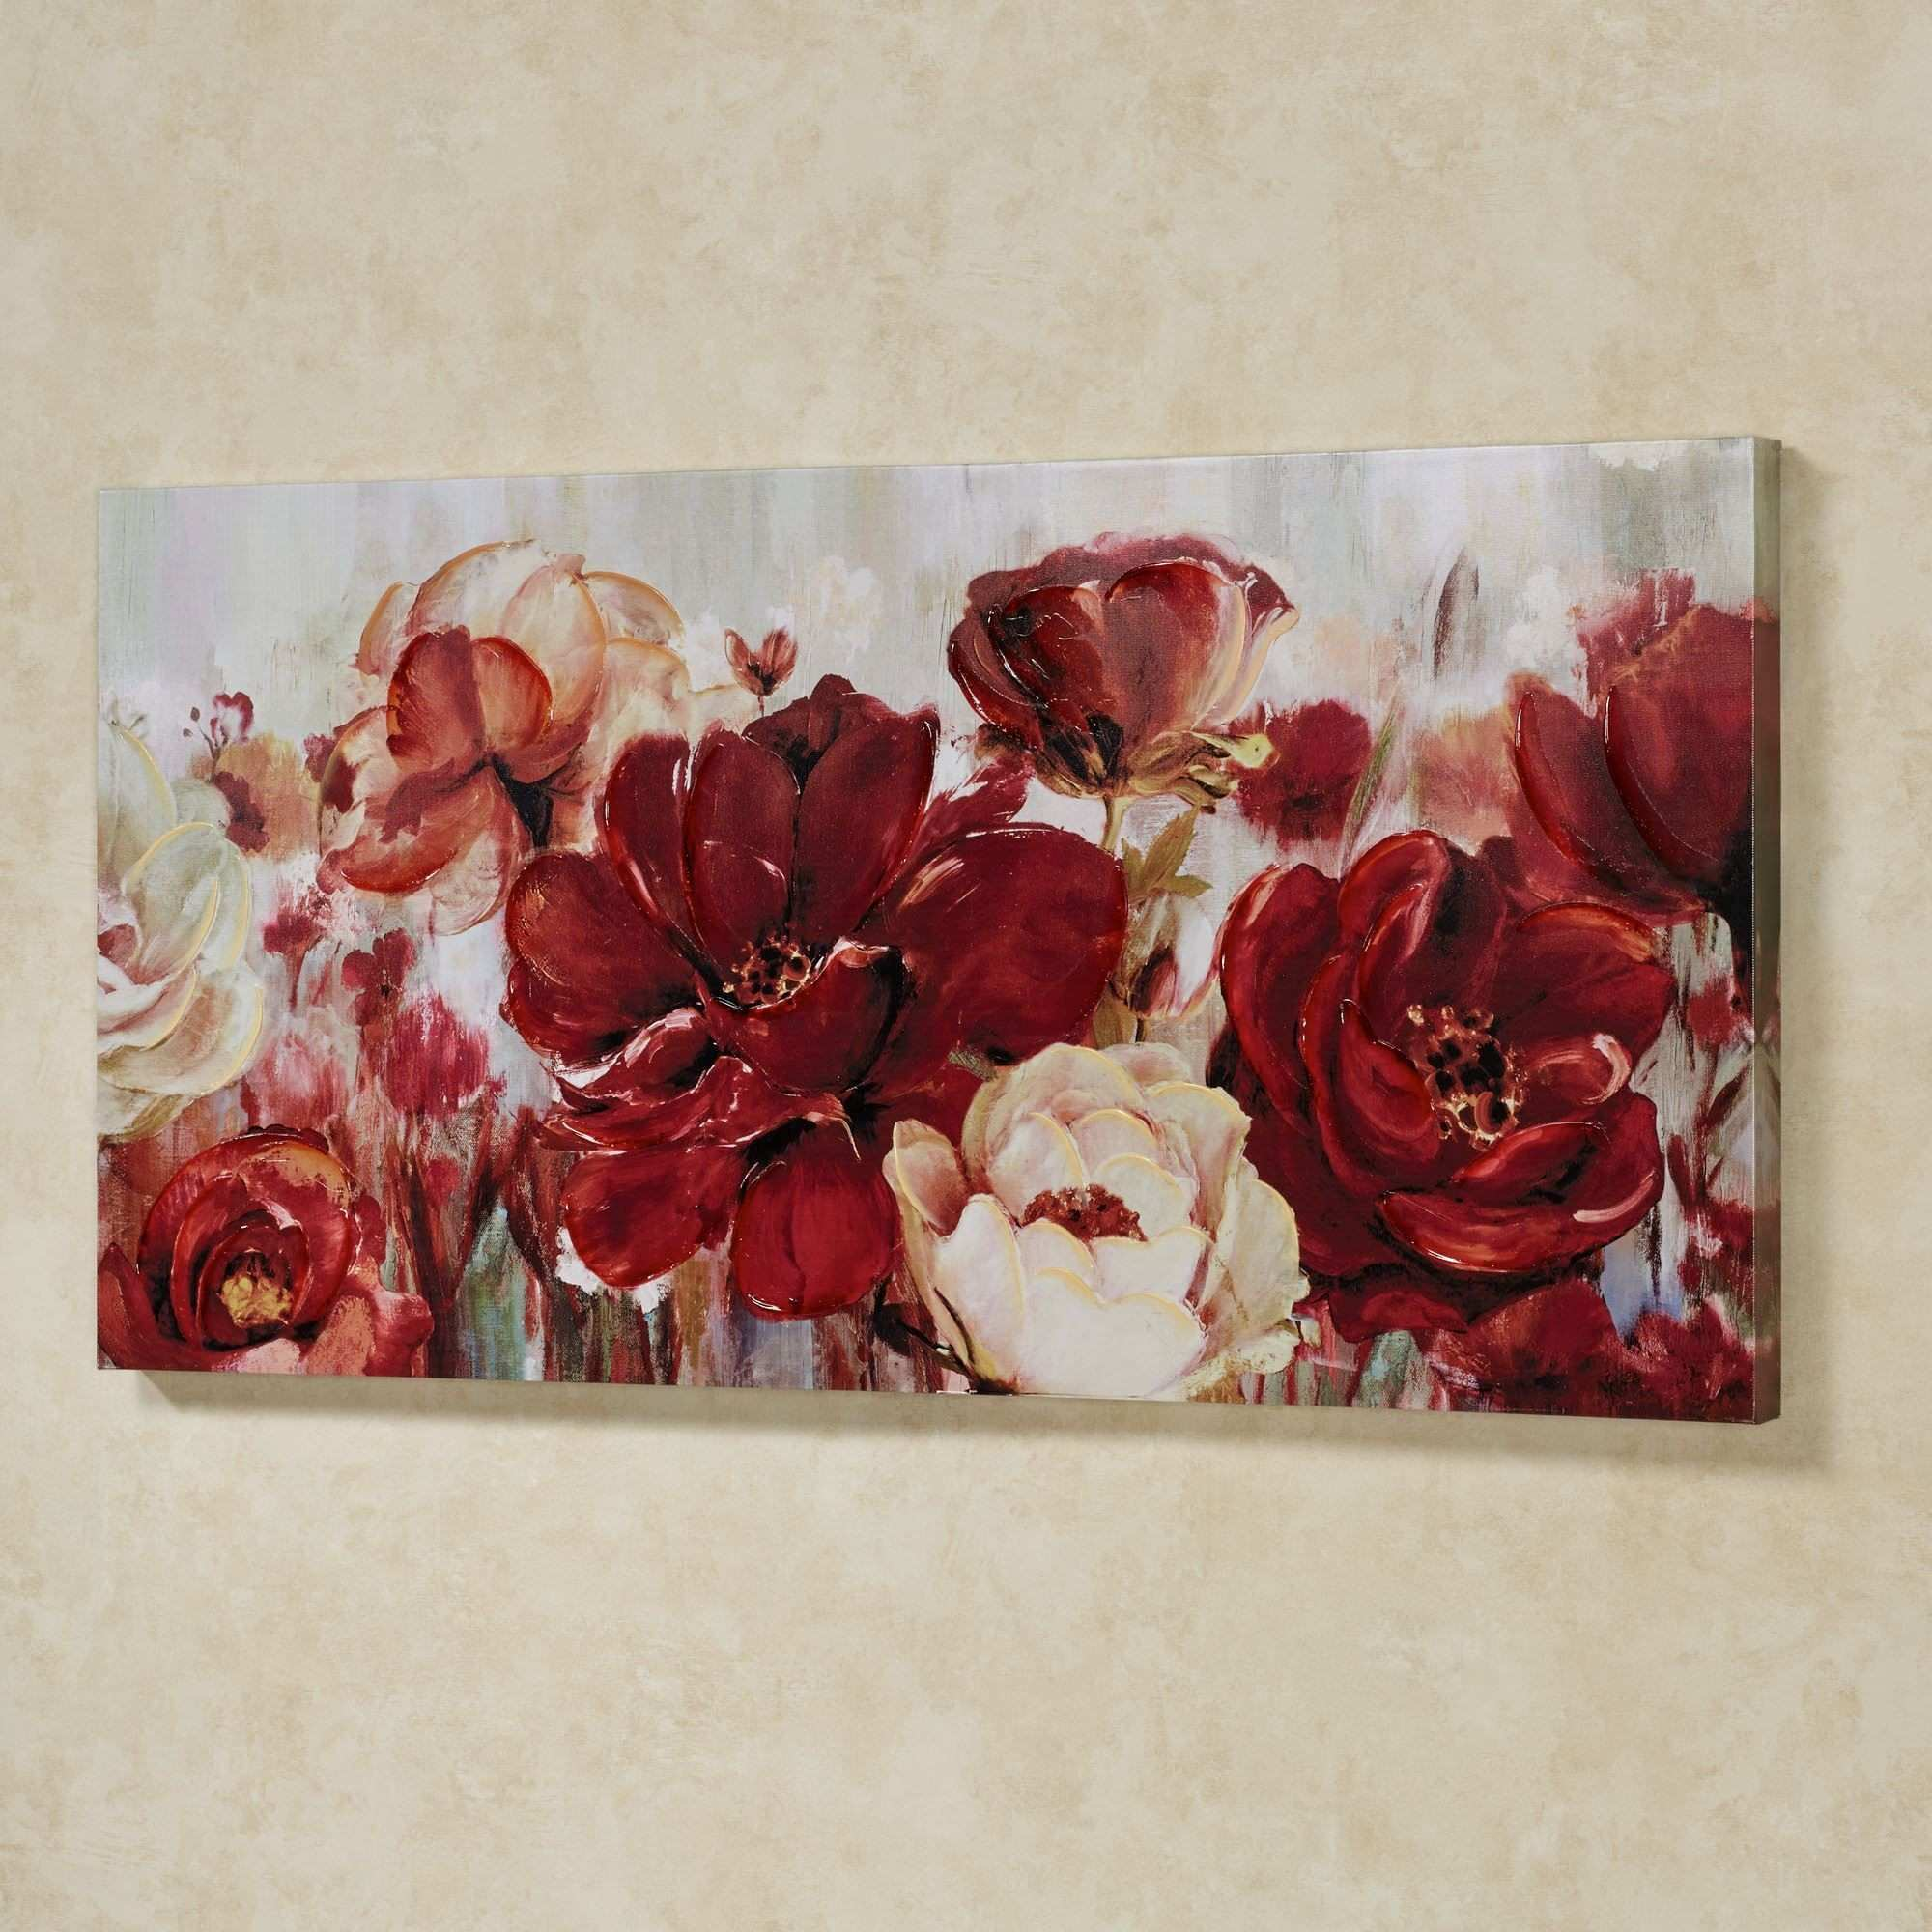 Rhapsody of Florals Giclee Canvas Wall Art